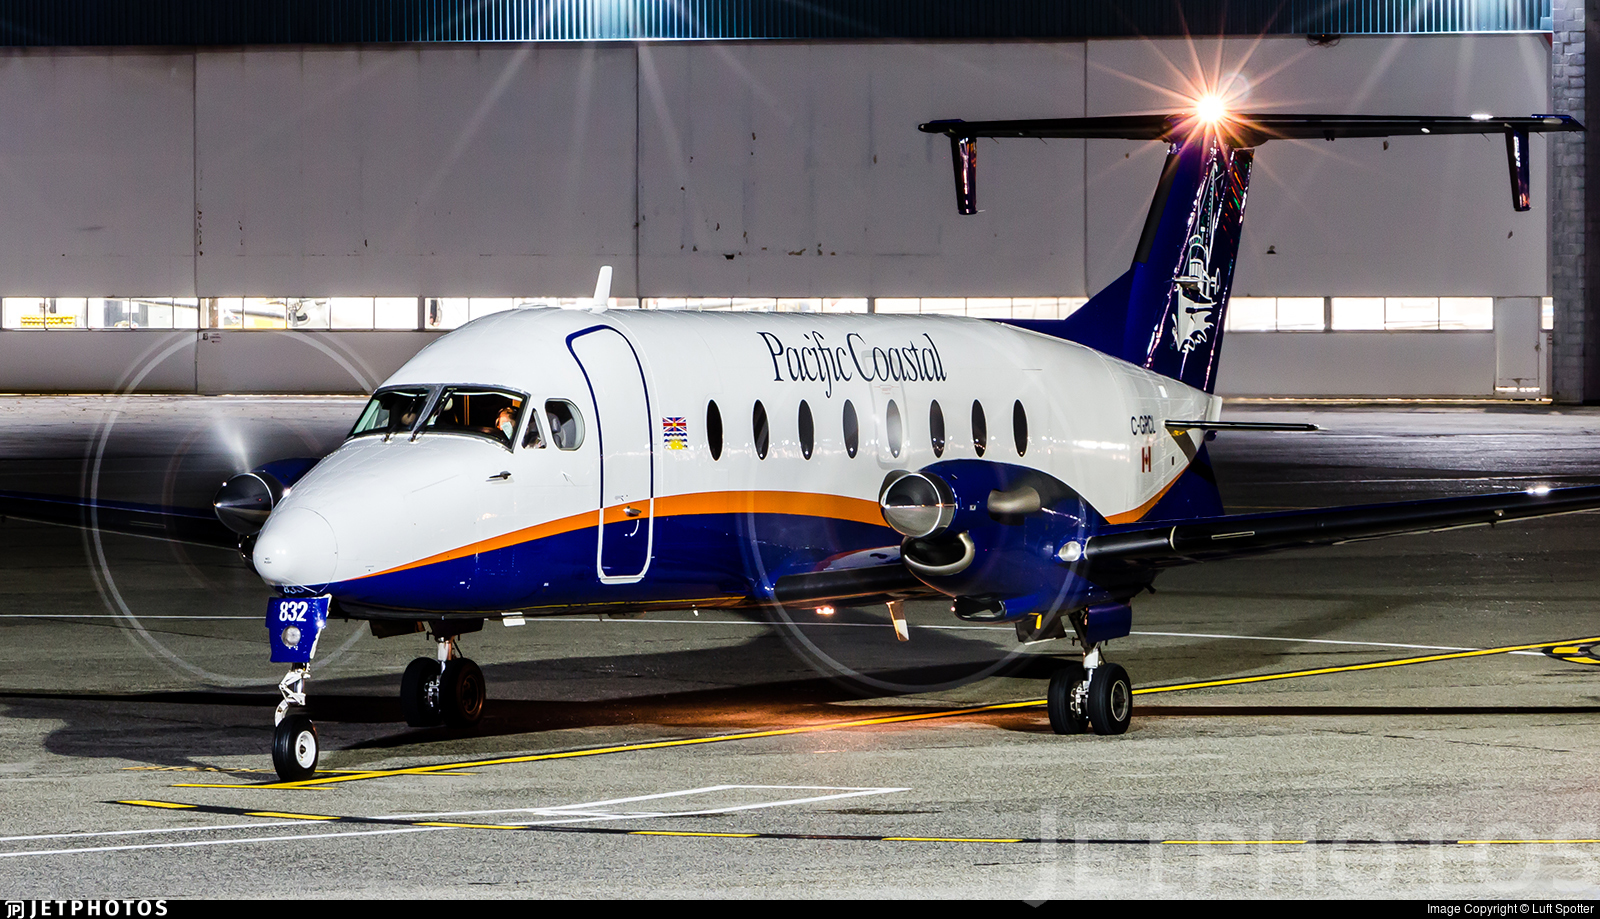 C-GPCL - Beech 1900D - Pacific Coastal Airlines